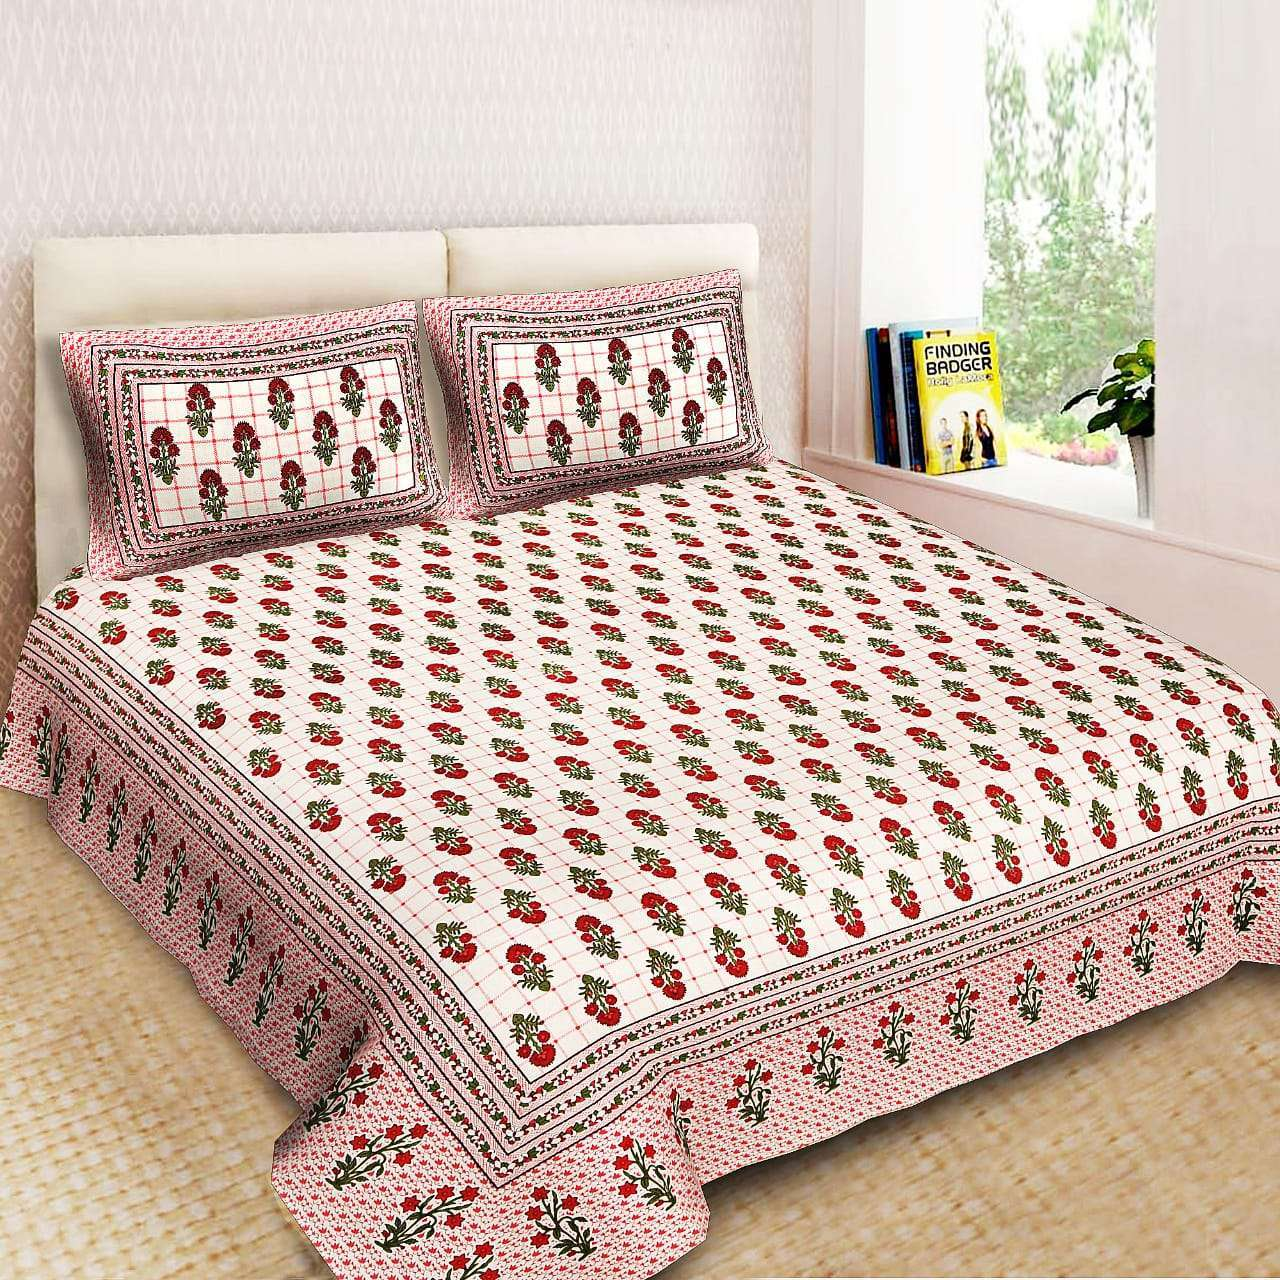 GANGAUR PURE COTTON KING SIZE DOUBLE BEDSHEETS WITH 2 PILLOW COVER AT BEST RATES